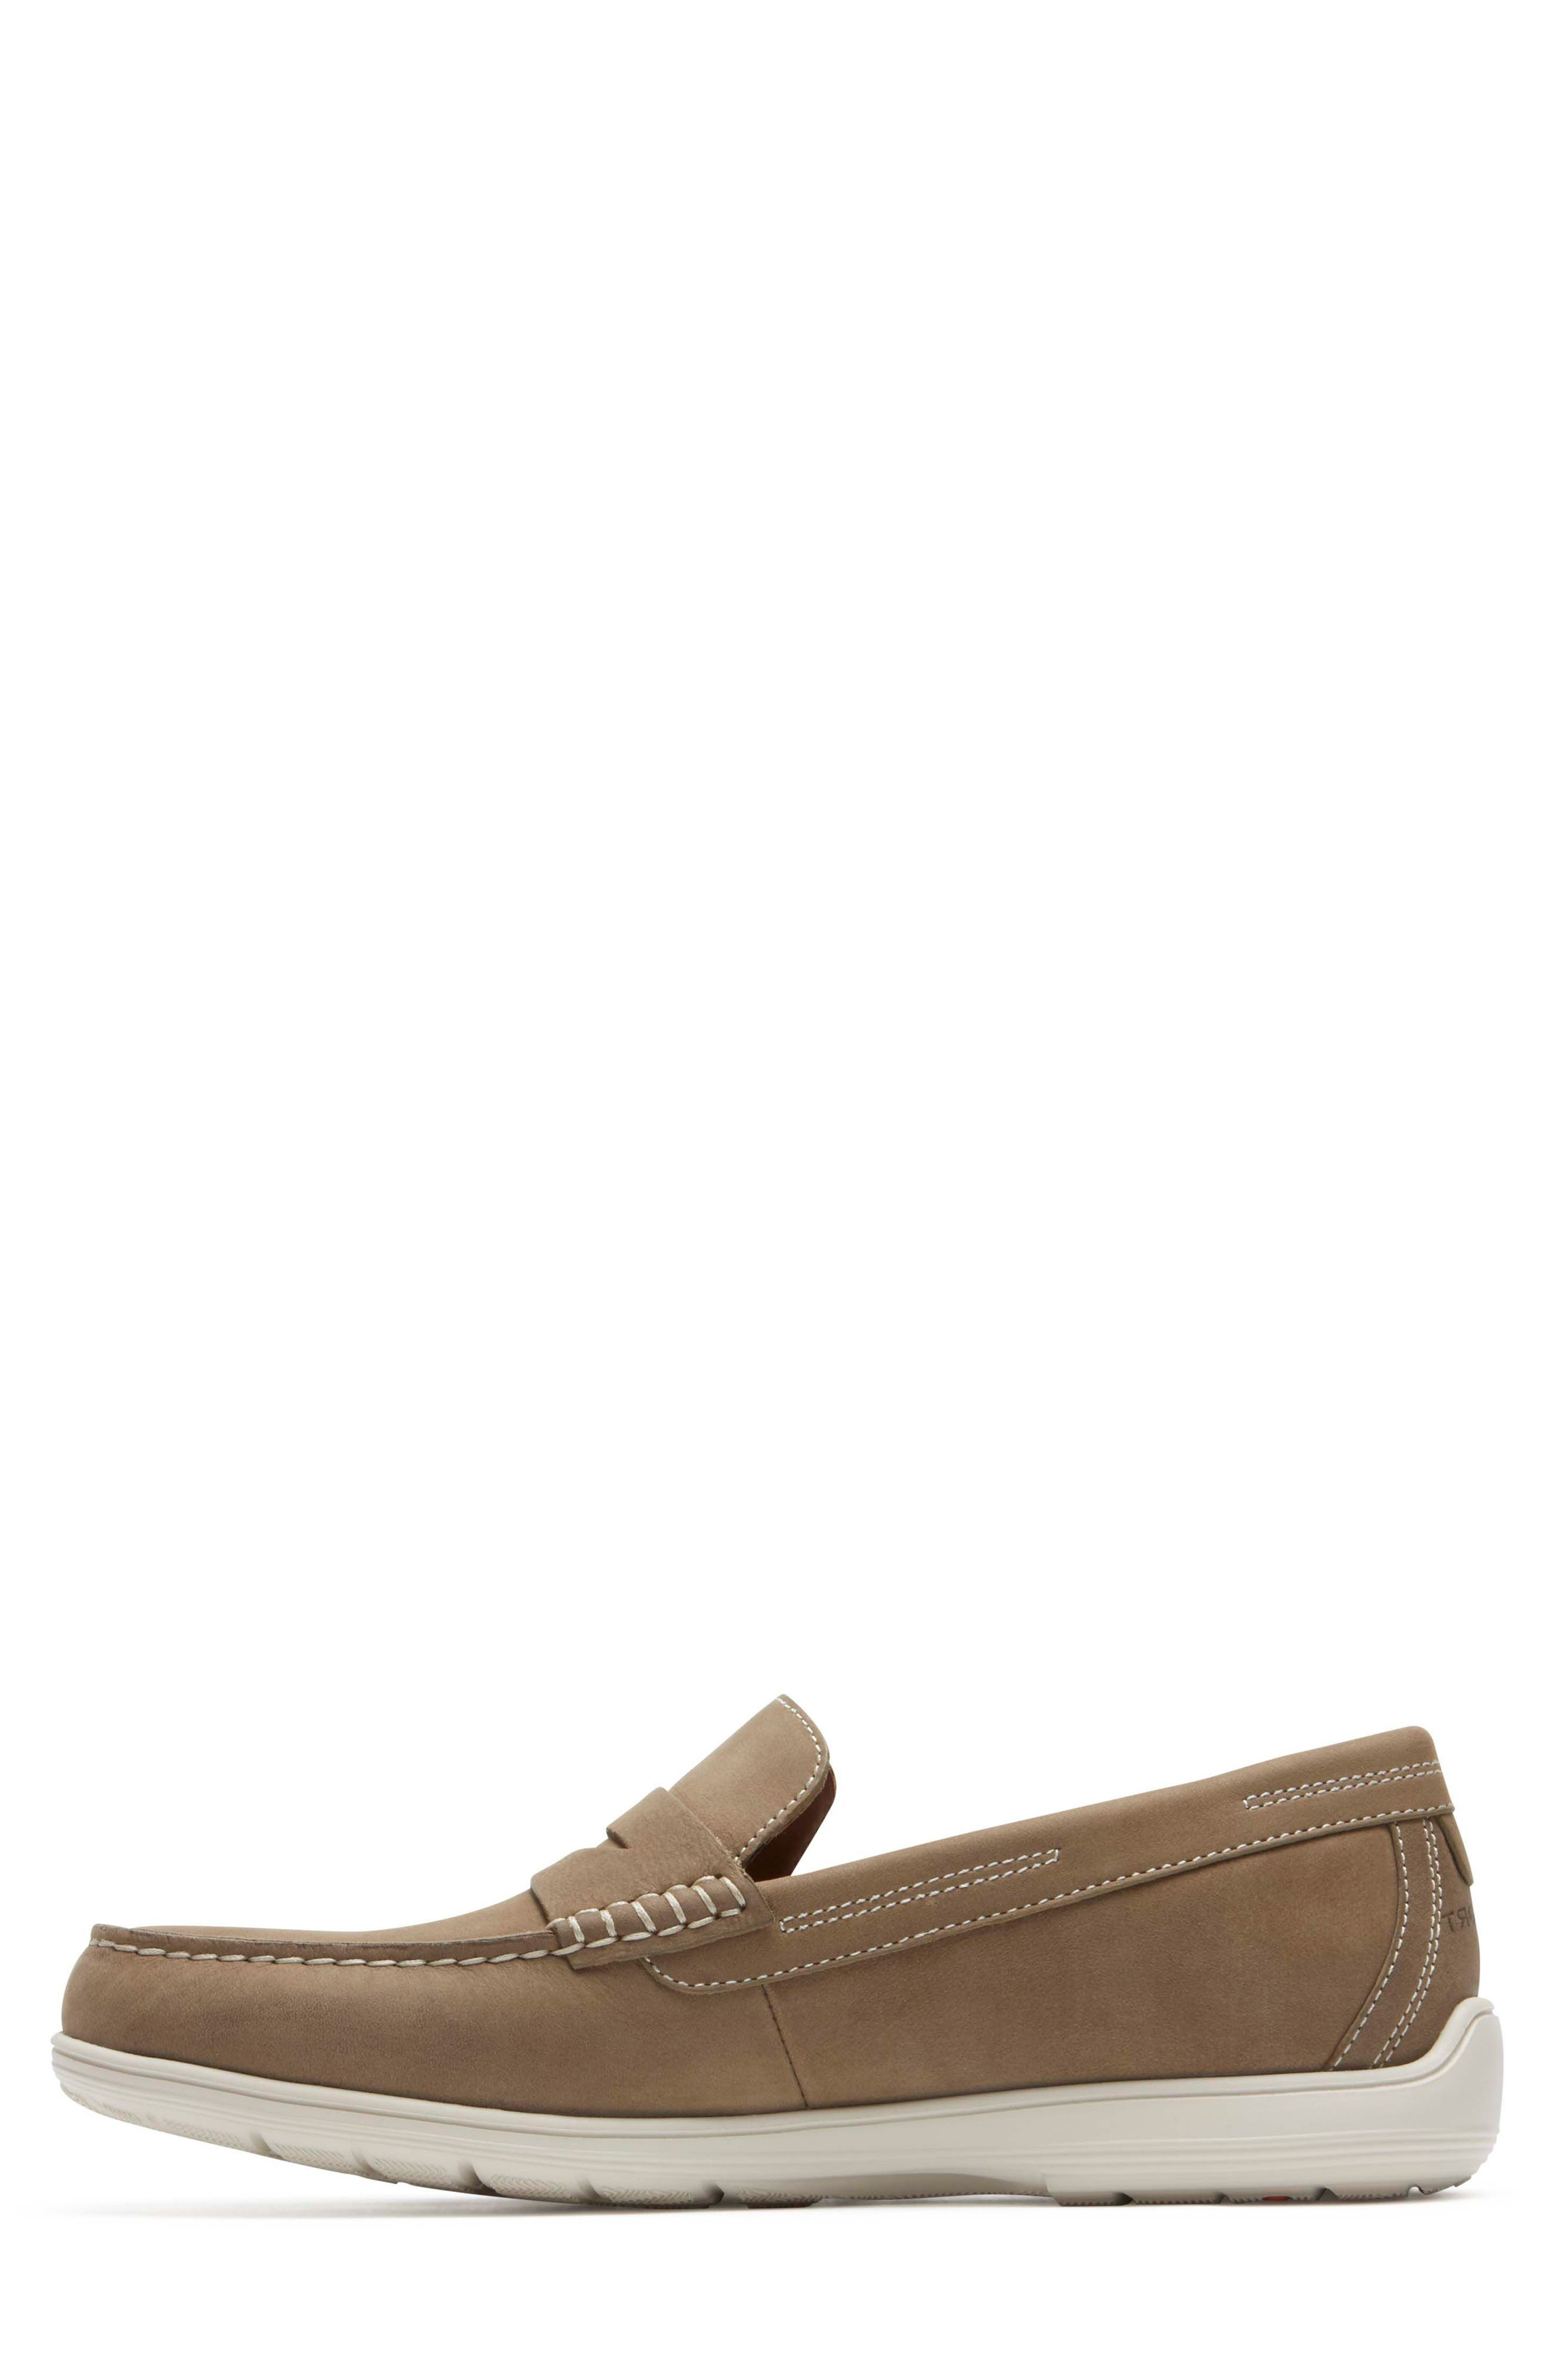 Total Motion Penny Loafer,                             Alternate thumbnail 5, color,